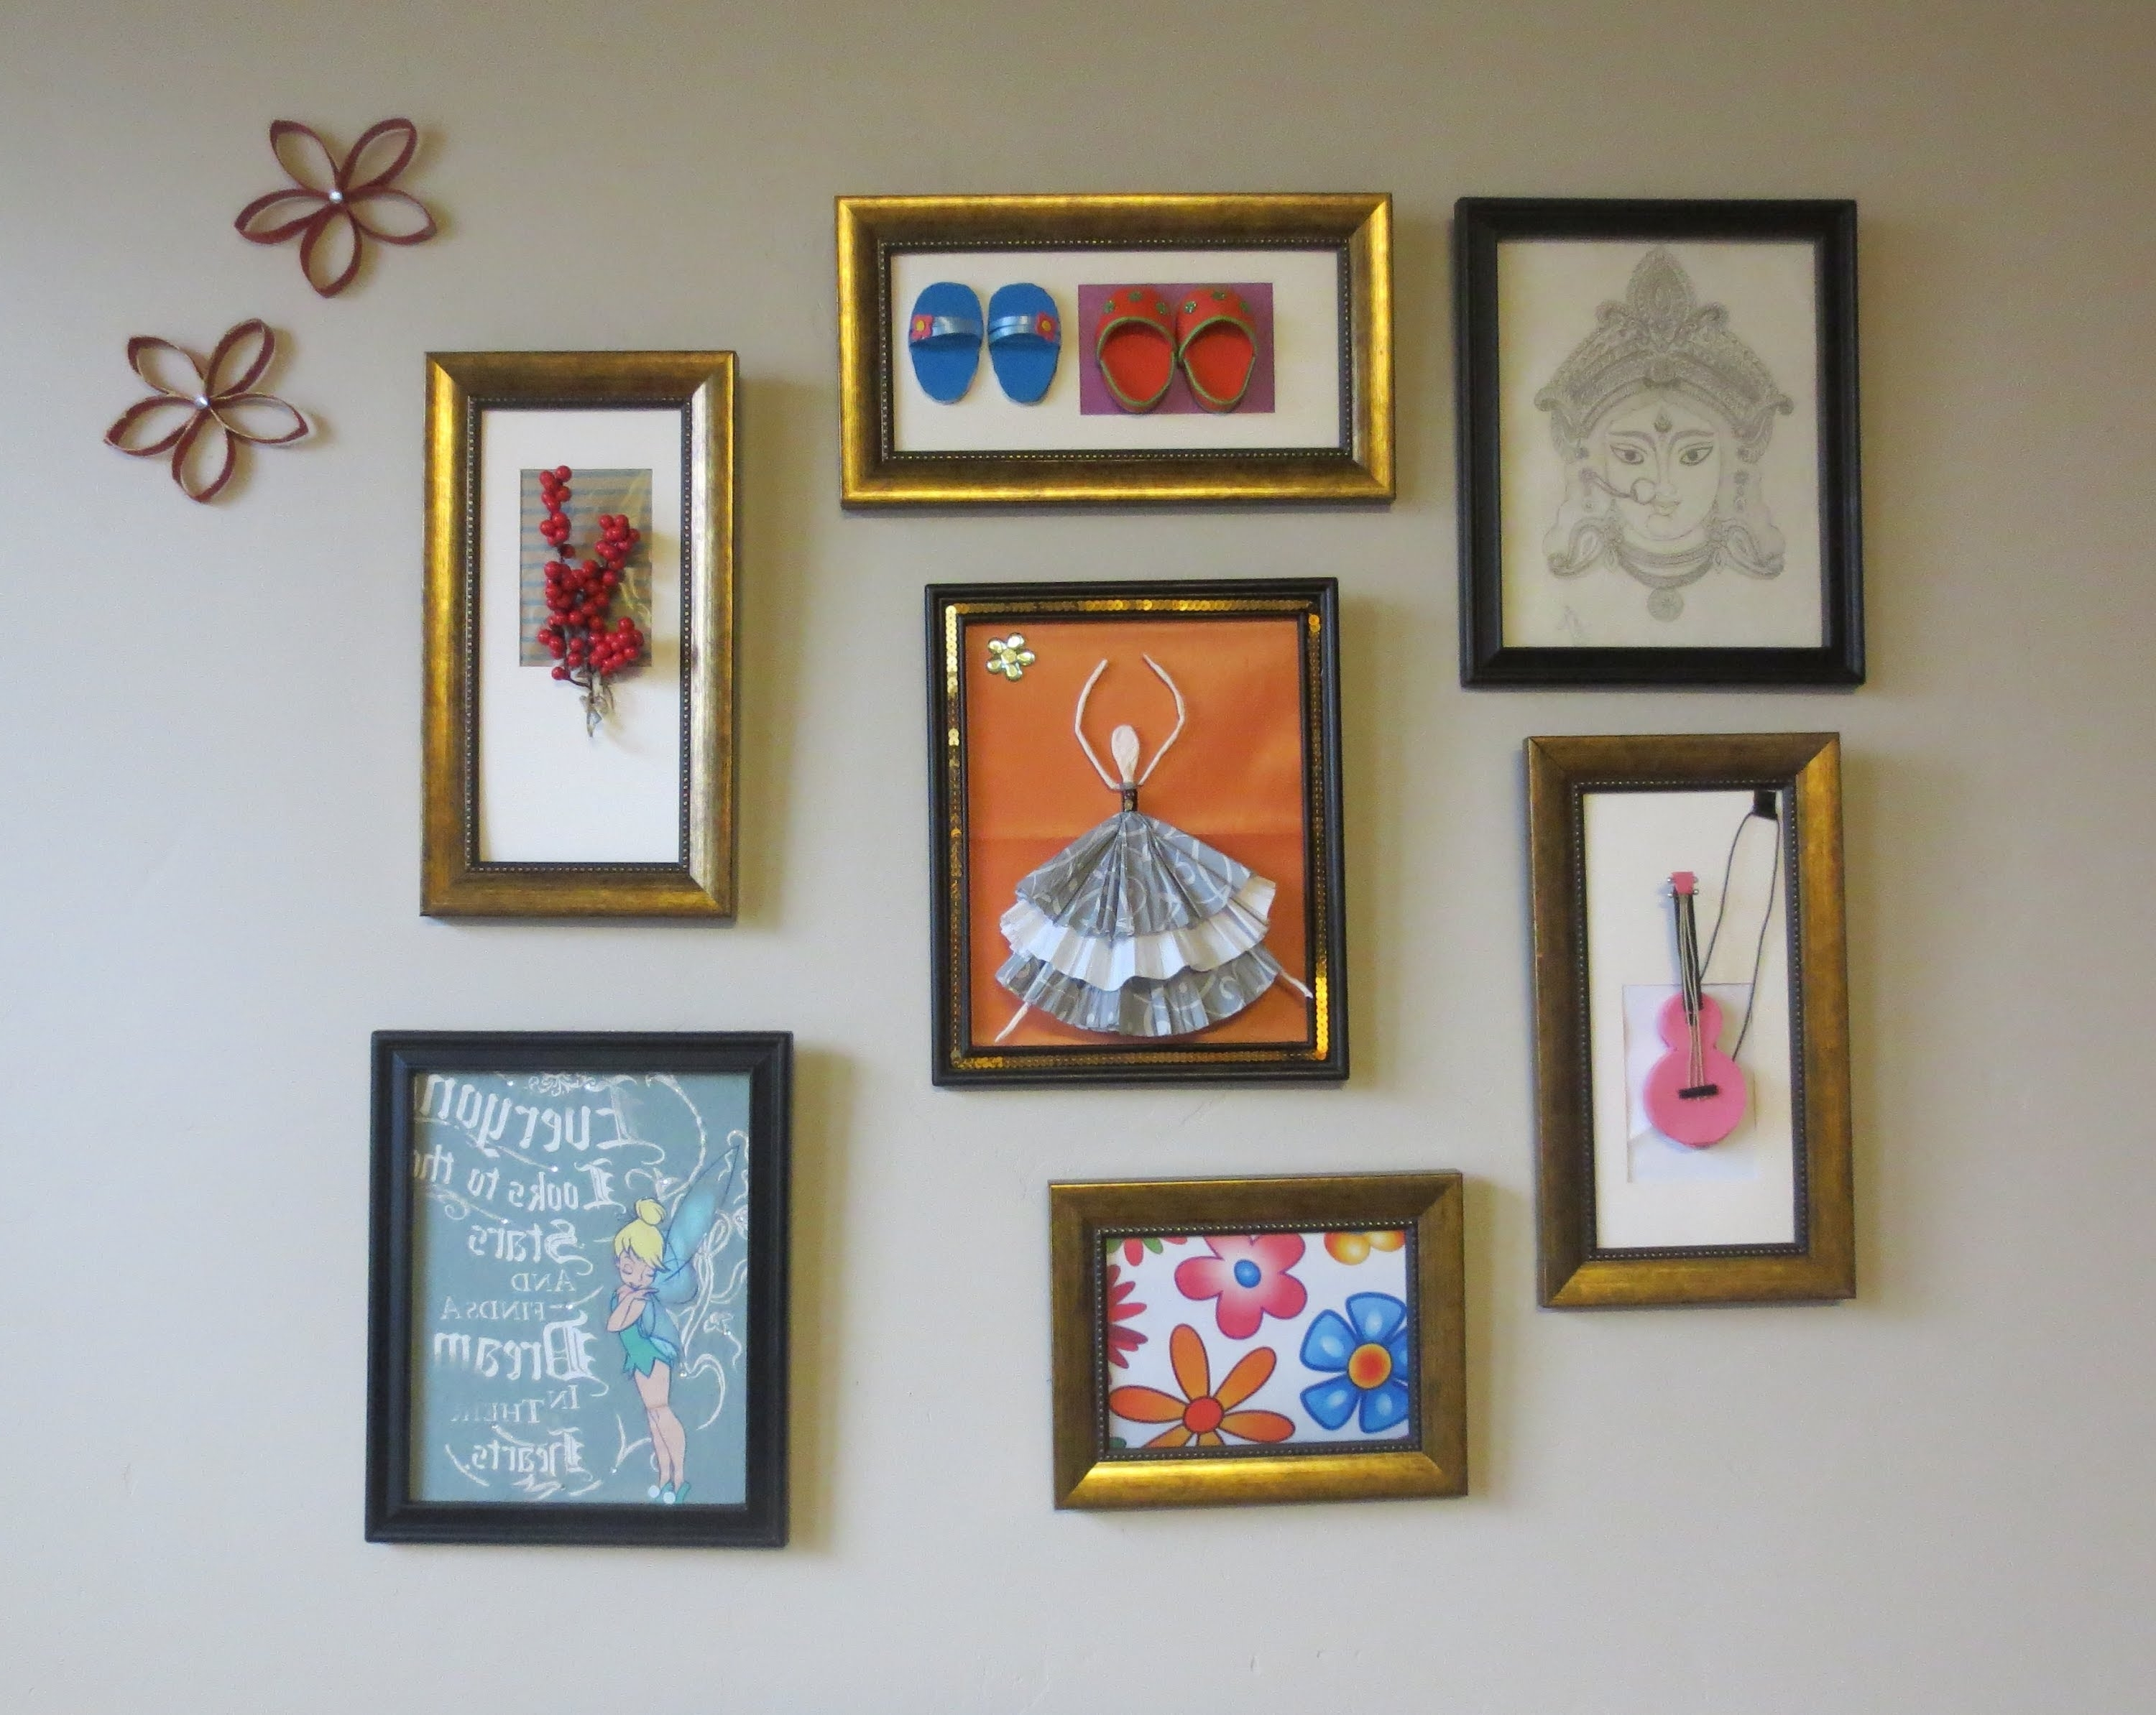 Well Liked Cheap Framed Wall Art With Regard To Home Decor : Tshirt Graphic & 3D Wall Art Picture Frame Collage (View 6 of 15)